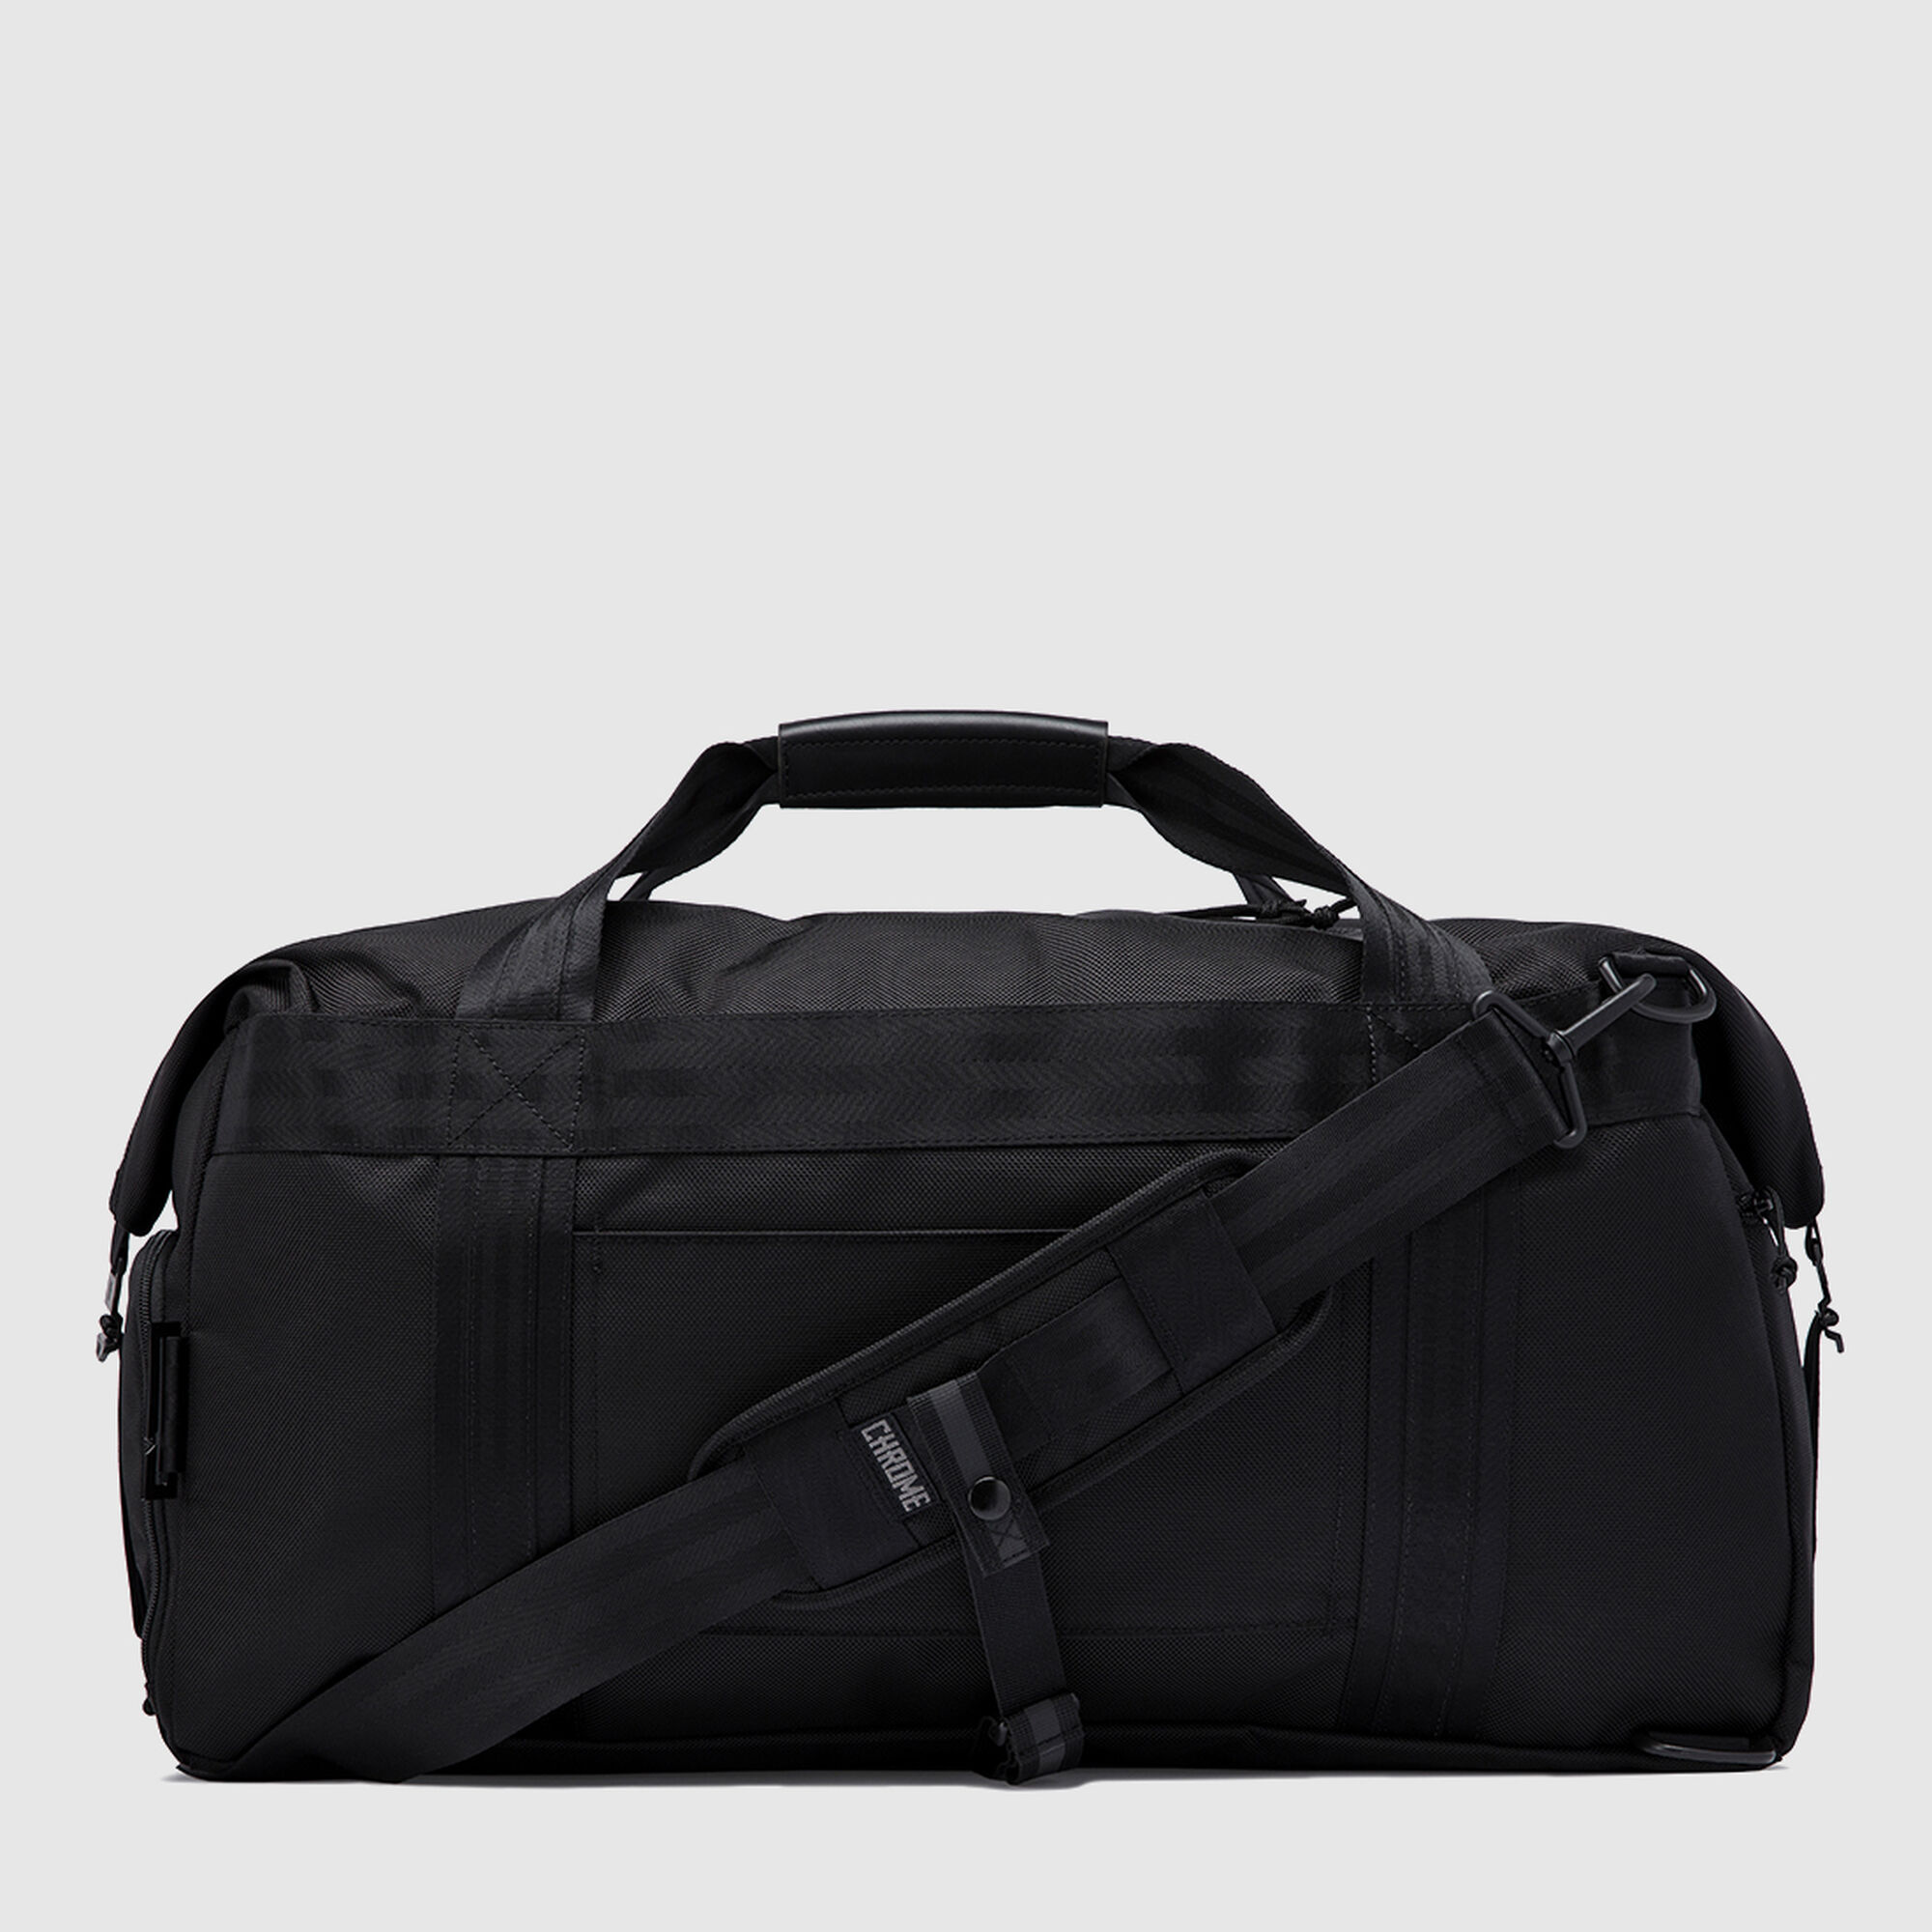 Osiris Duffle Bag In All Black Small View